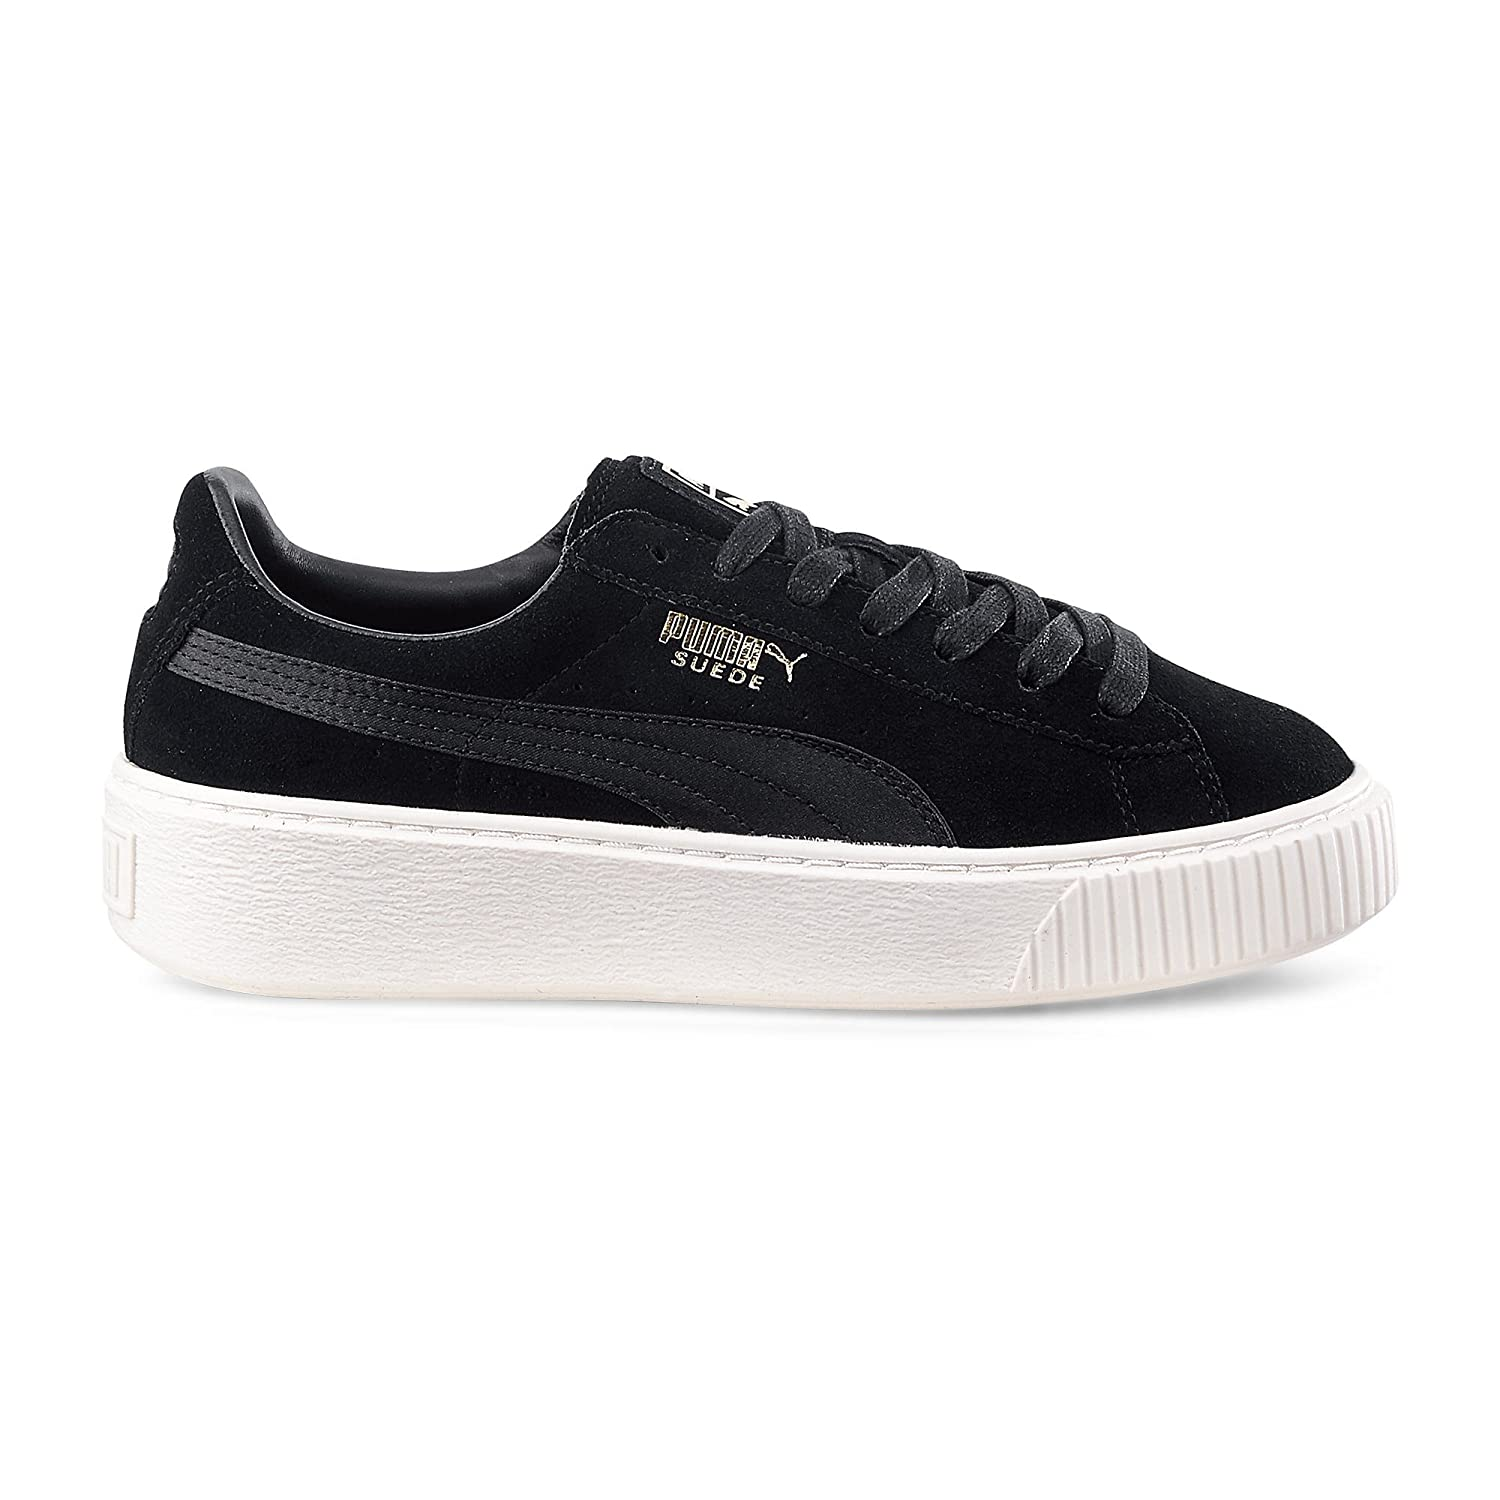 low priced 3a870 e794c Puma Womens Suede Platform Satin Wn's Shoes In Black Suede ...